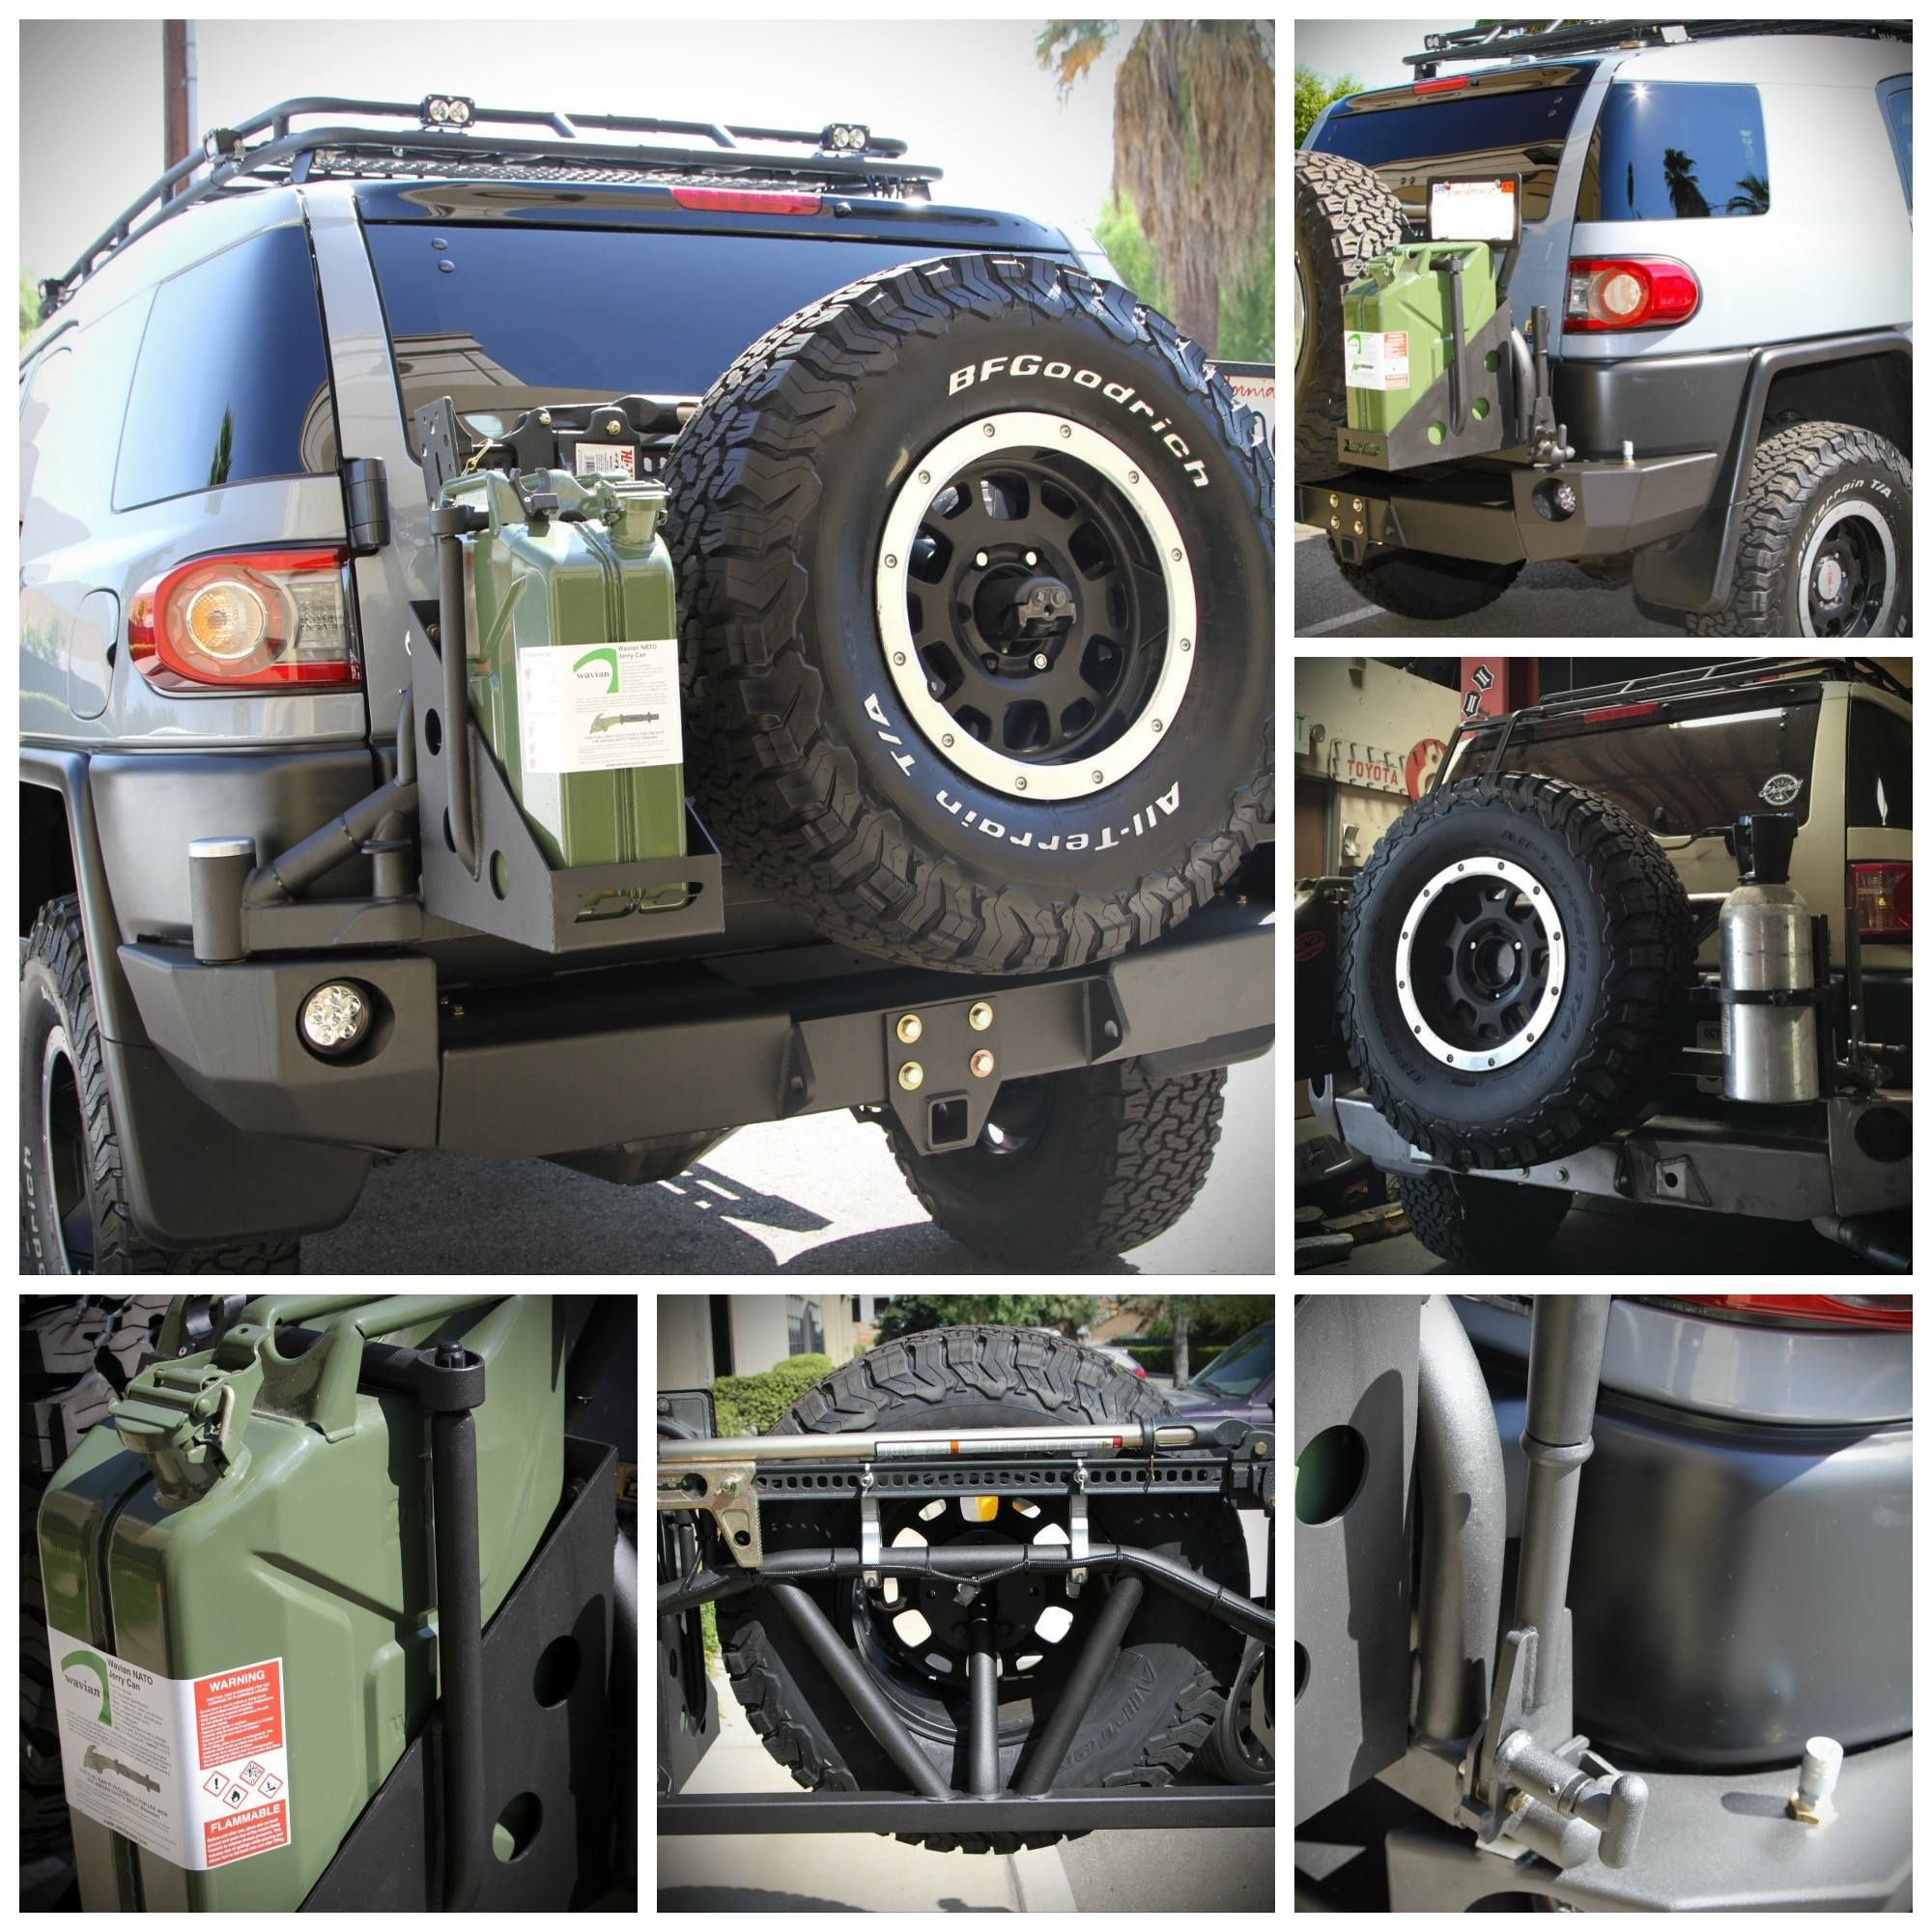 Demello Offroad Fj Rear Wrap Around Bumper With Tire Carrier Vehiculo De Lujo Camionetas Maleteros